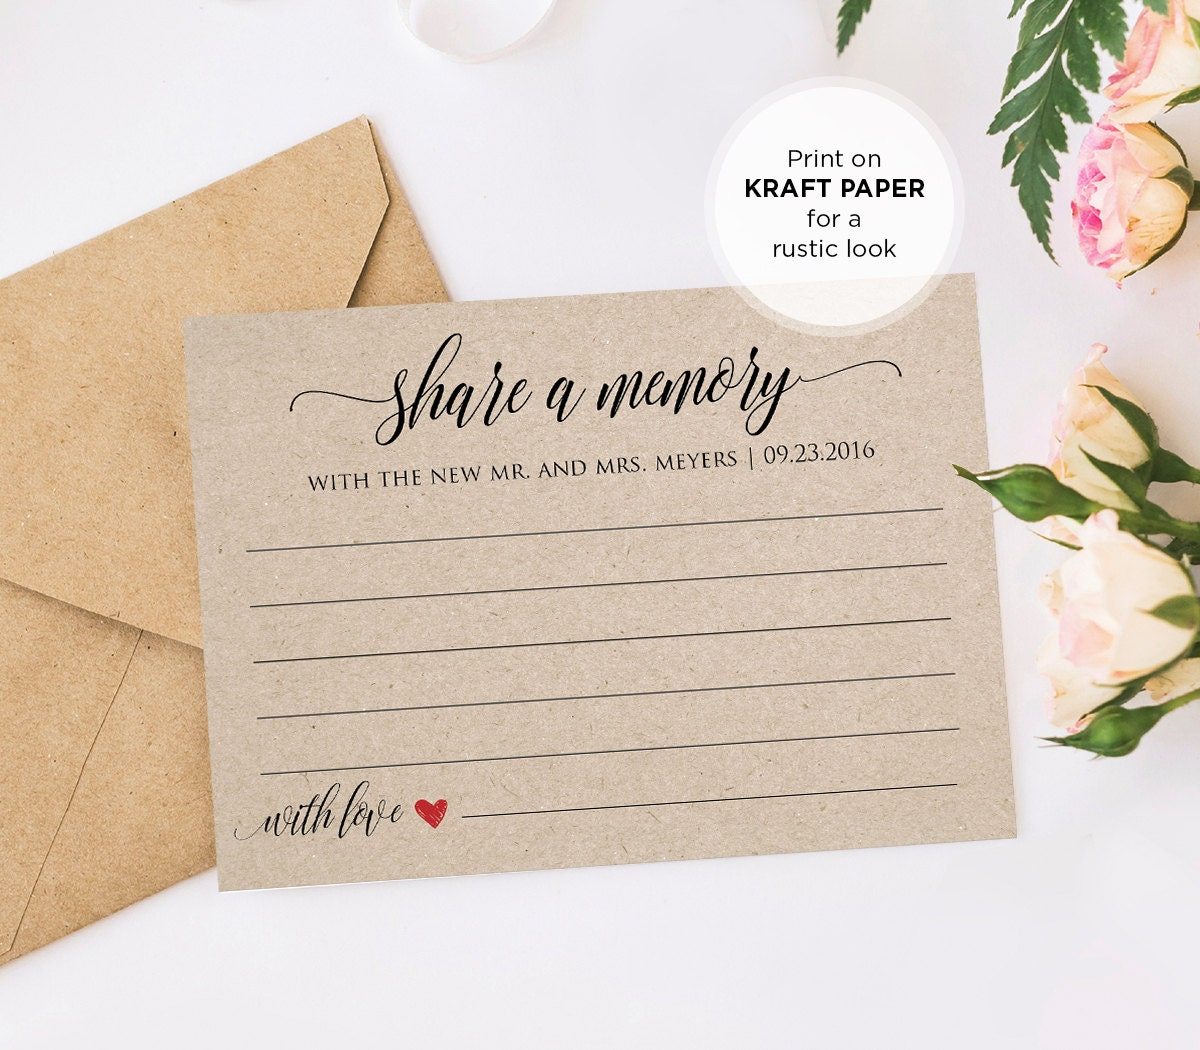 bridal shower advice cards template - share a memory printable card wedding advice template for